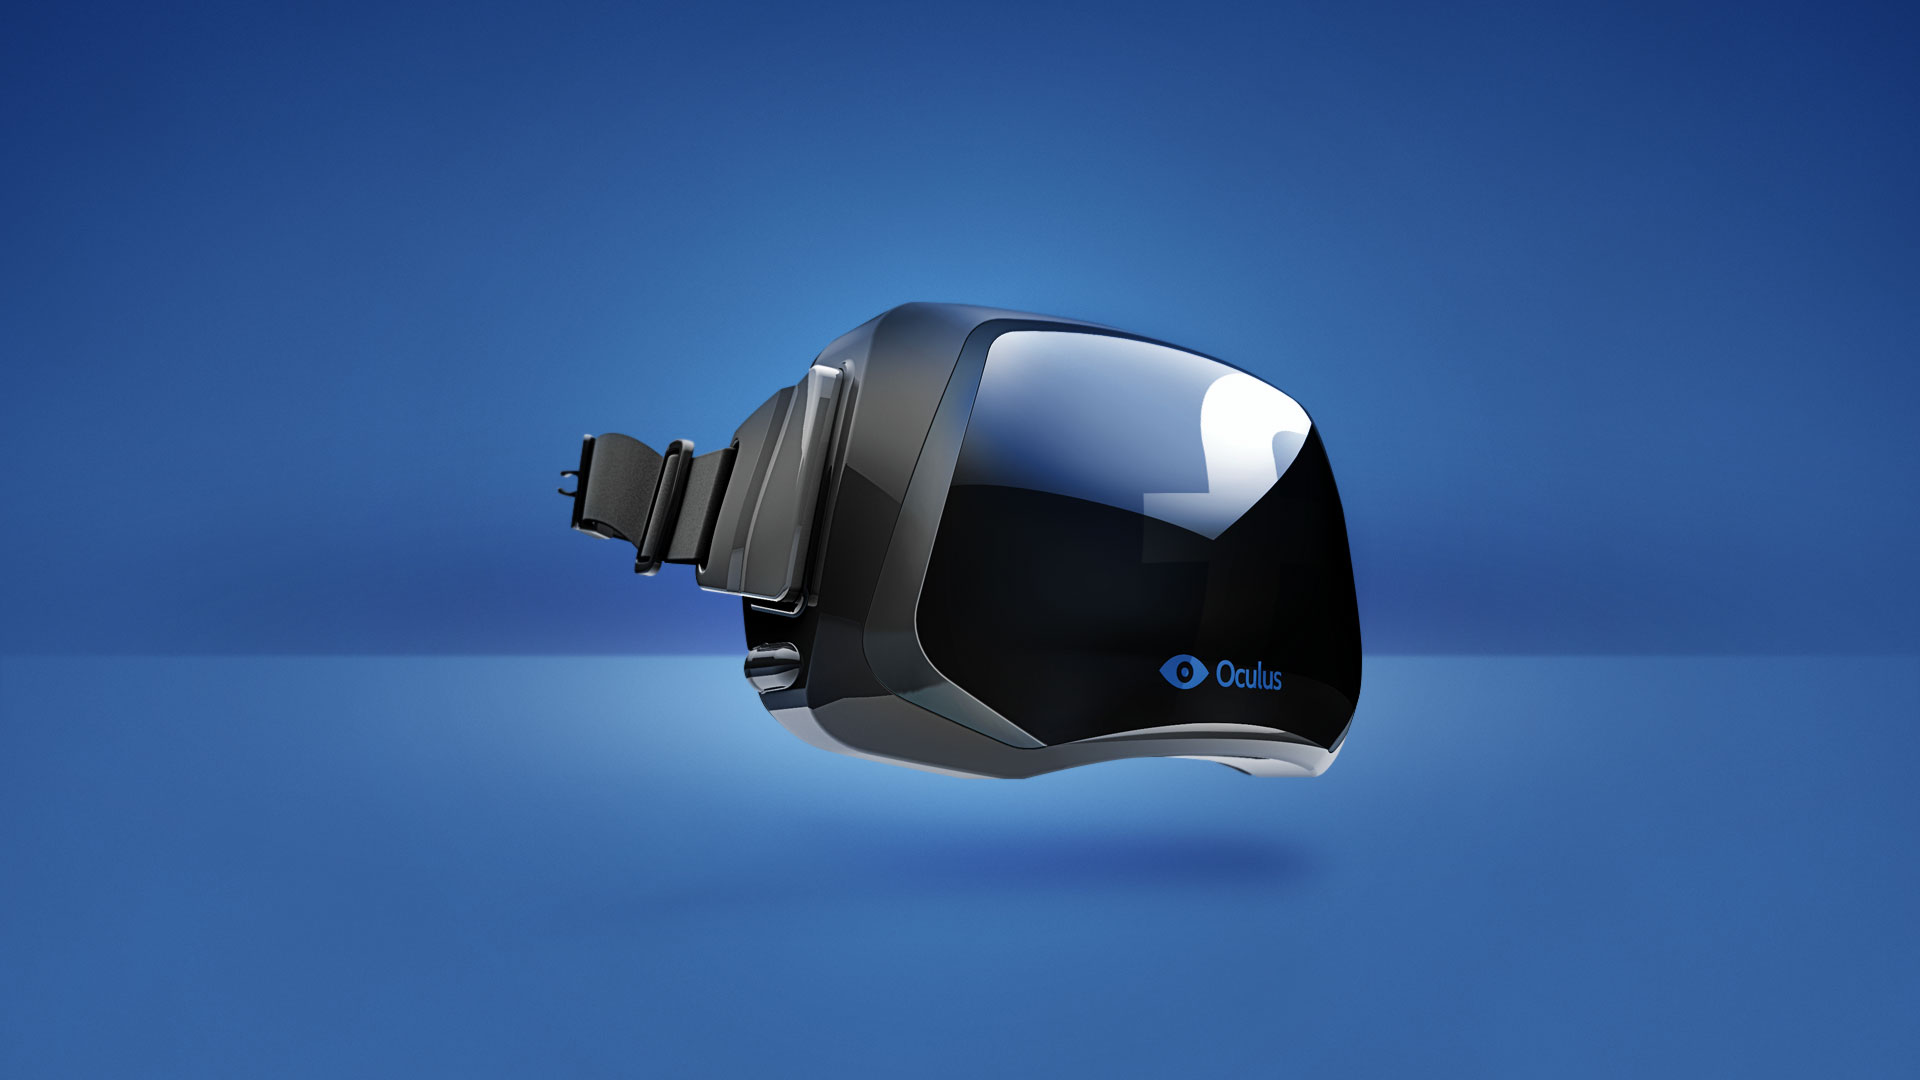 Oculus Rift Wallpapers Pictures Images HD Wallpapers Download Free Images Wallpaper [1000image.com]